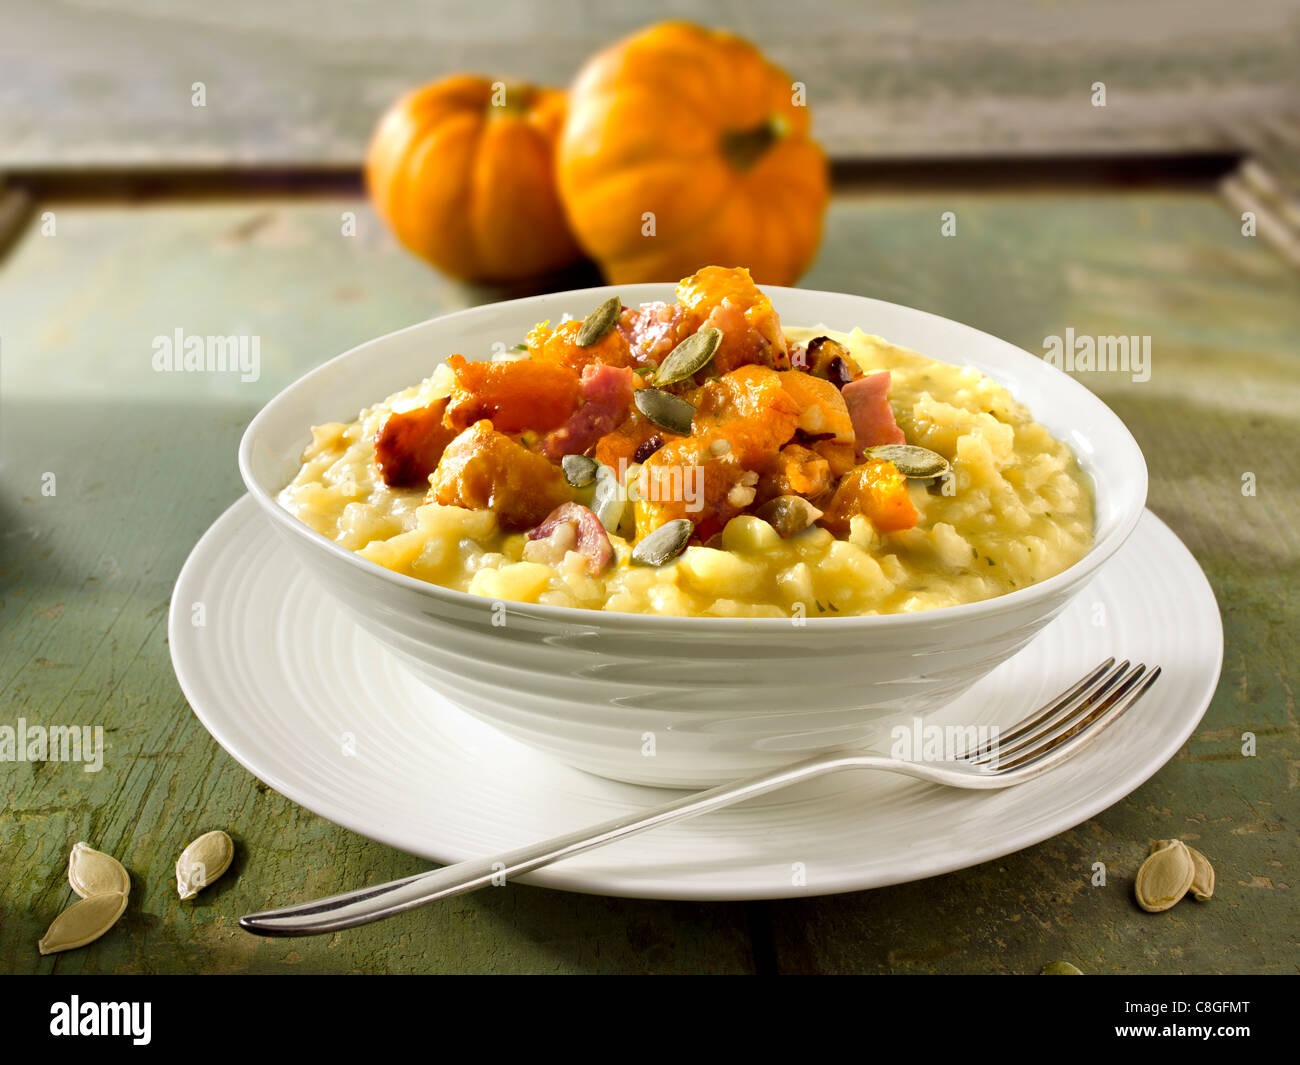 Roast Pumkin & Bacon on safron Risotto - Stock Image